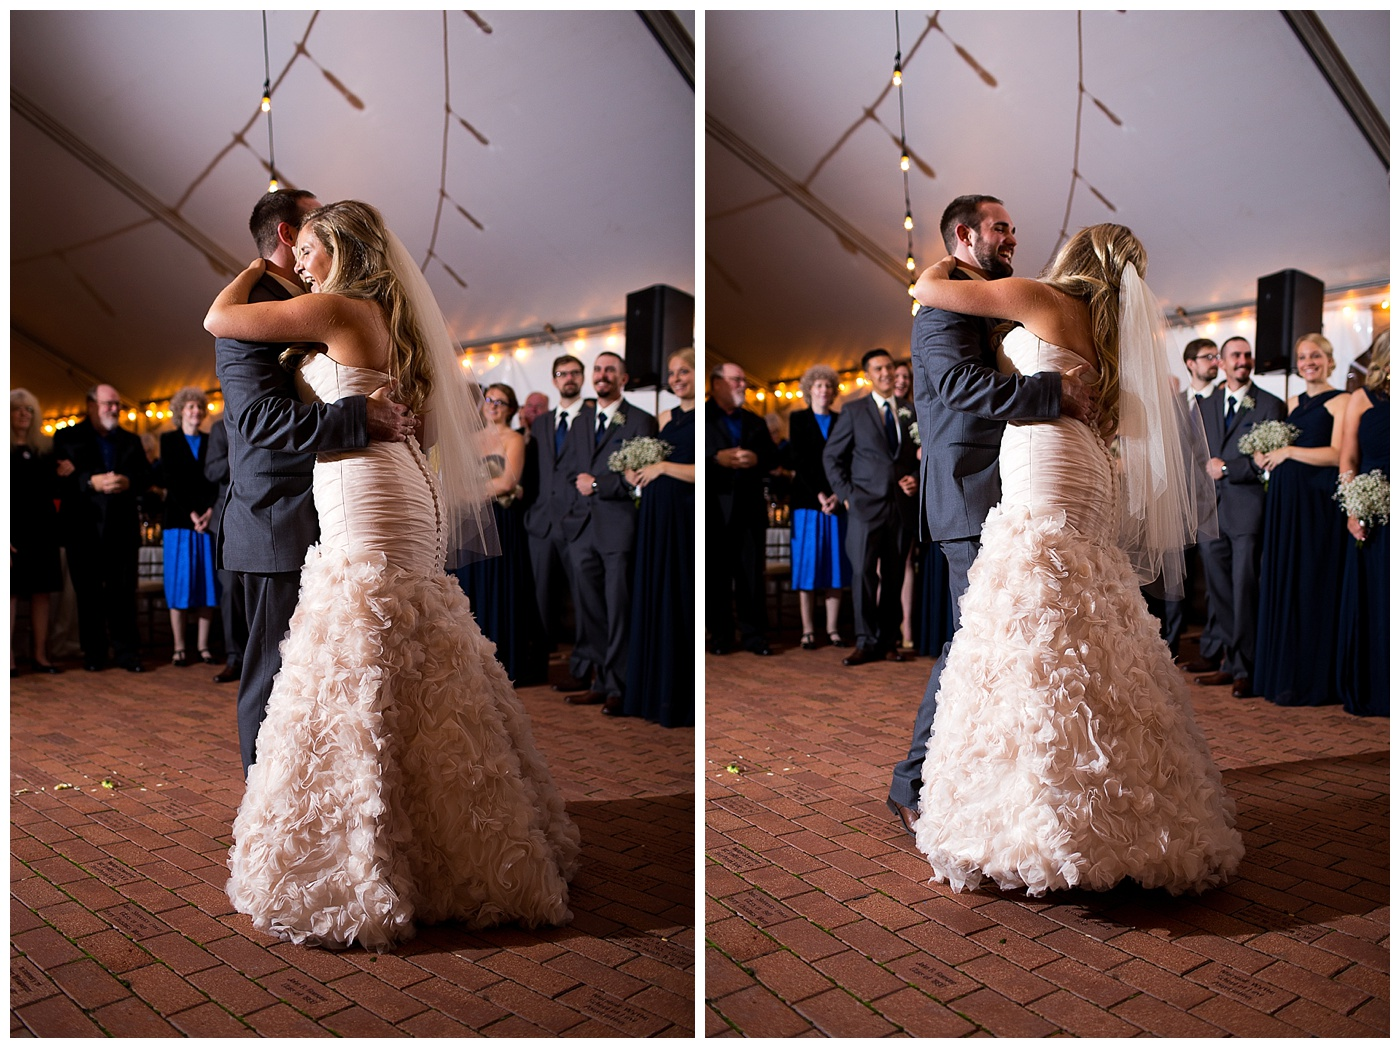 Erin & DJ are Married!!  A William and Mary Alumni House wedding in Williamsburg Virginia!